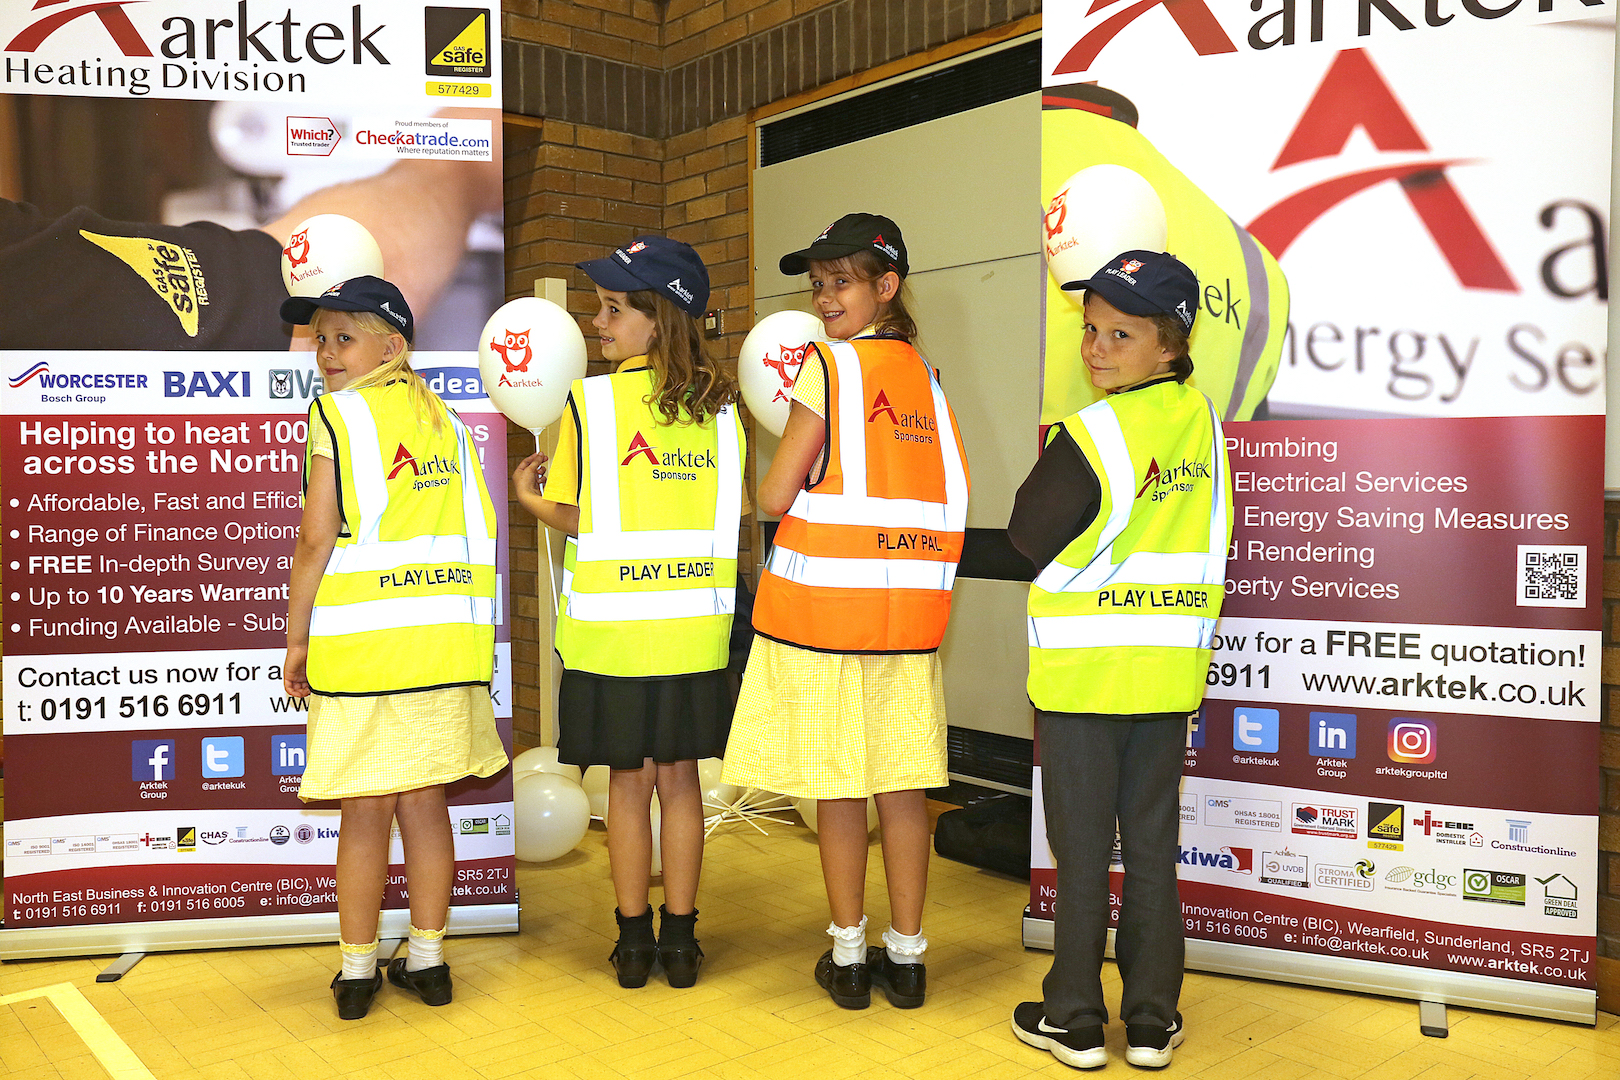 Fatfield Primary School Play Pal and Play Leaders Sponsored by Arktek